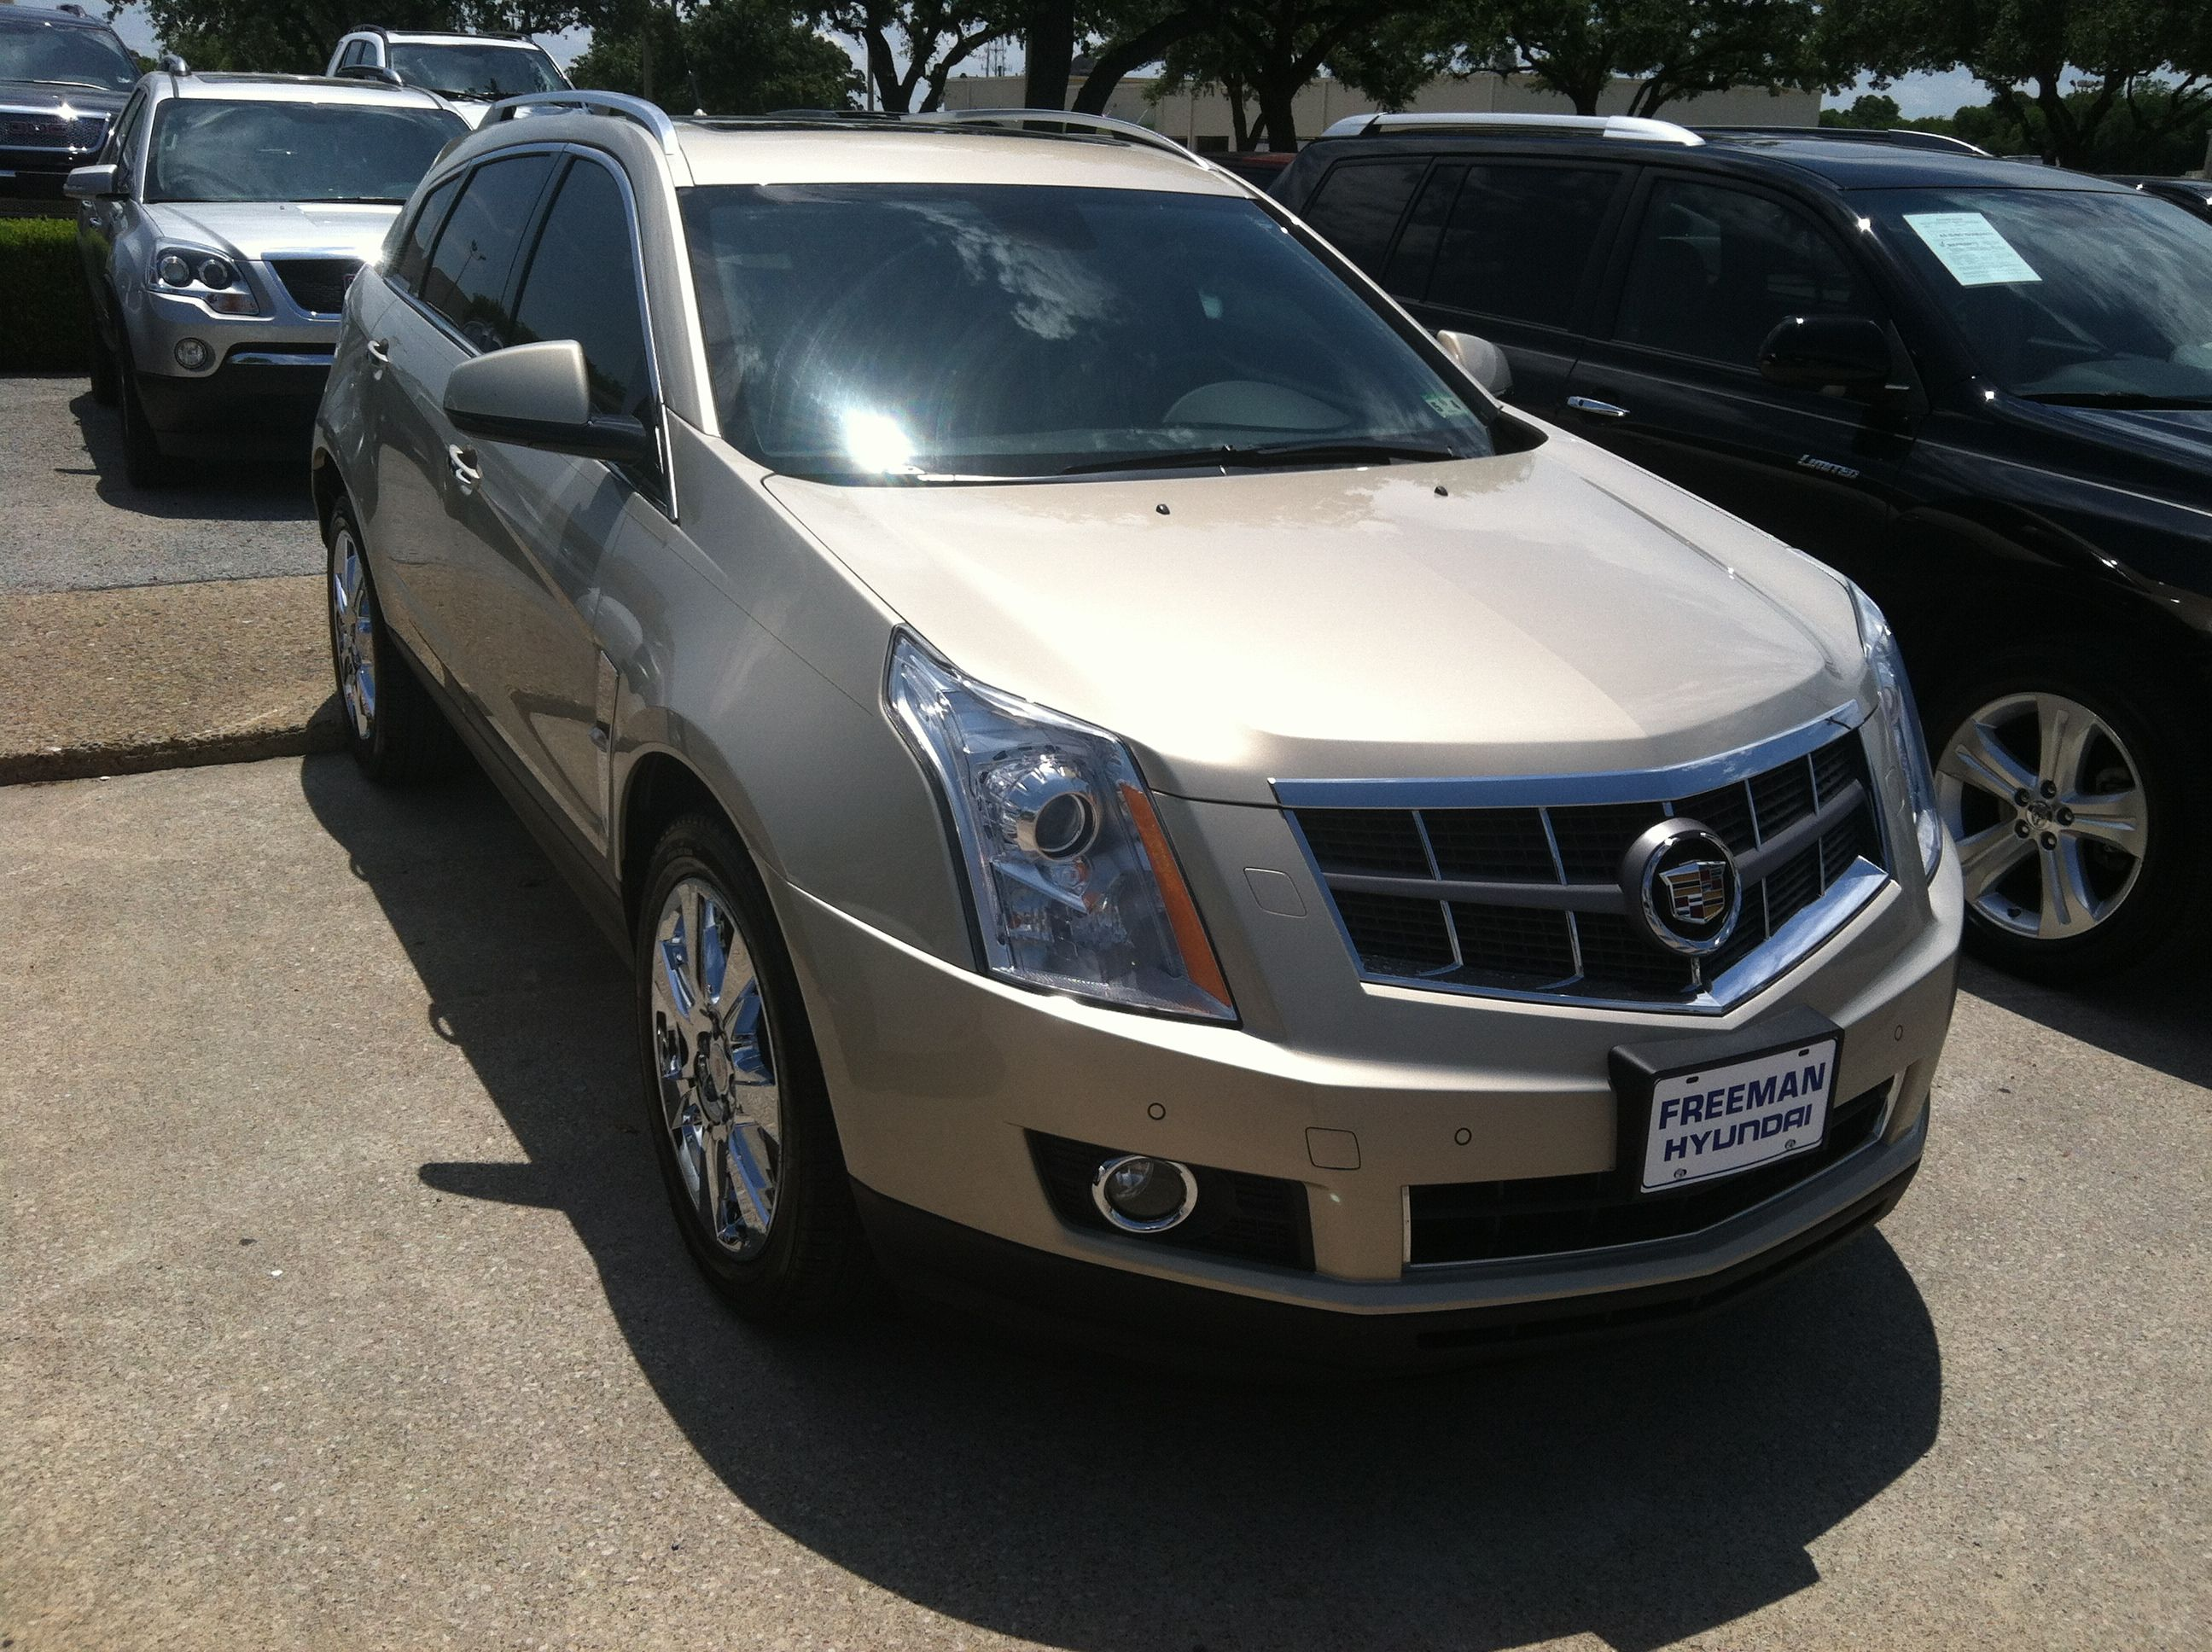 value in cadillac residual authority leads segment srx gm blog